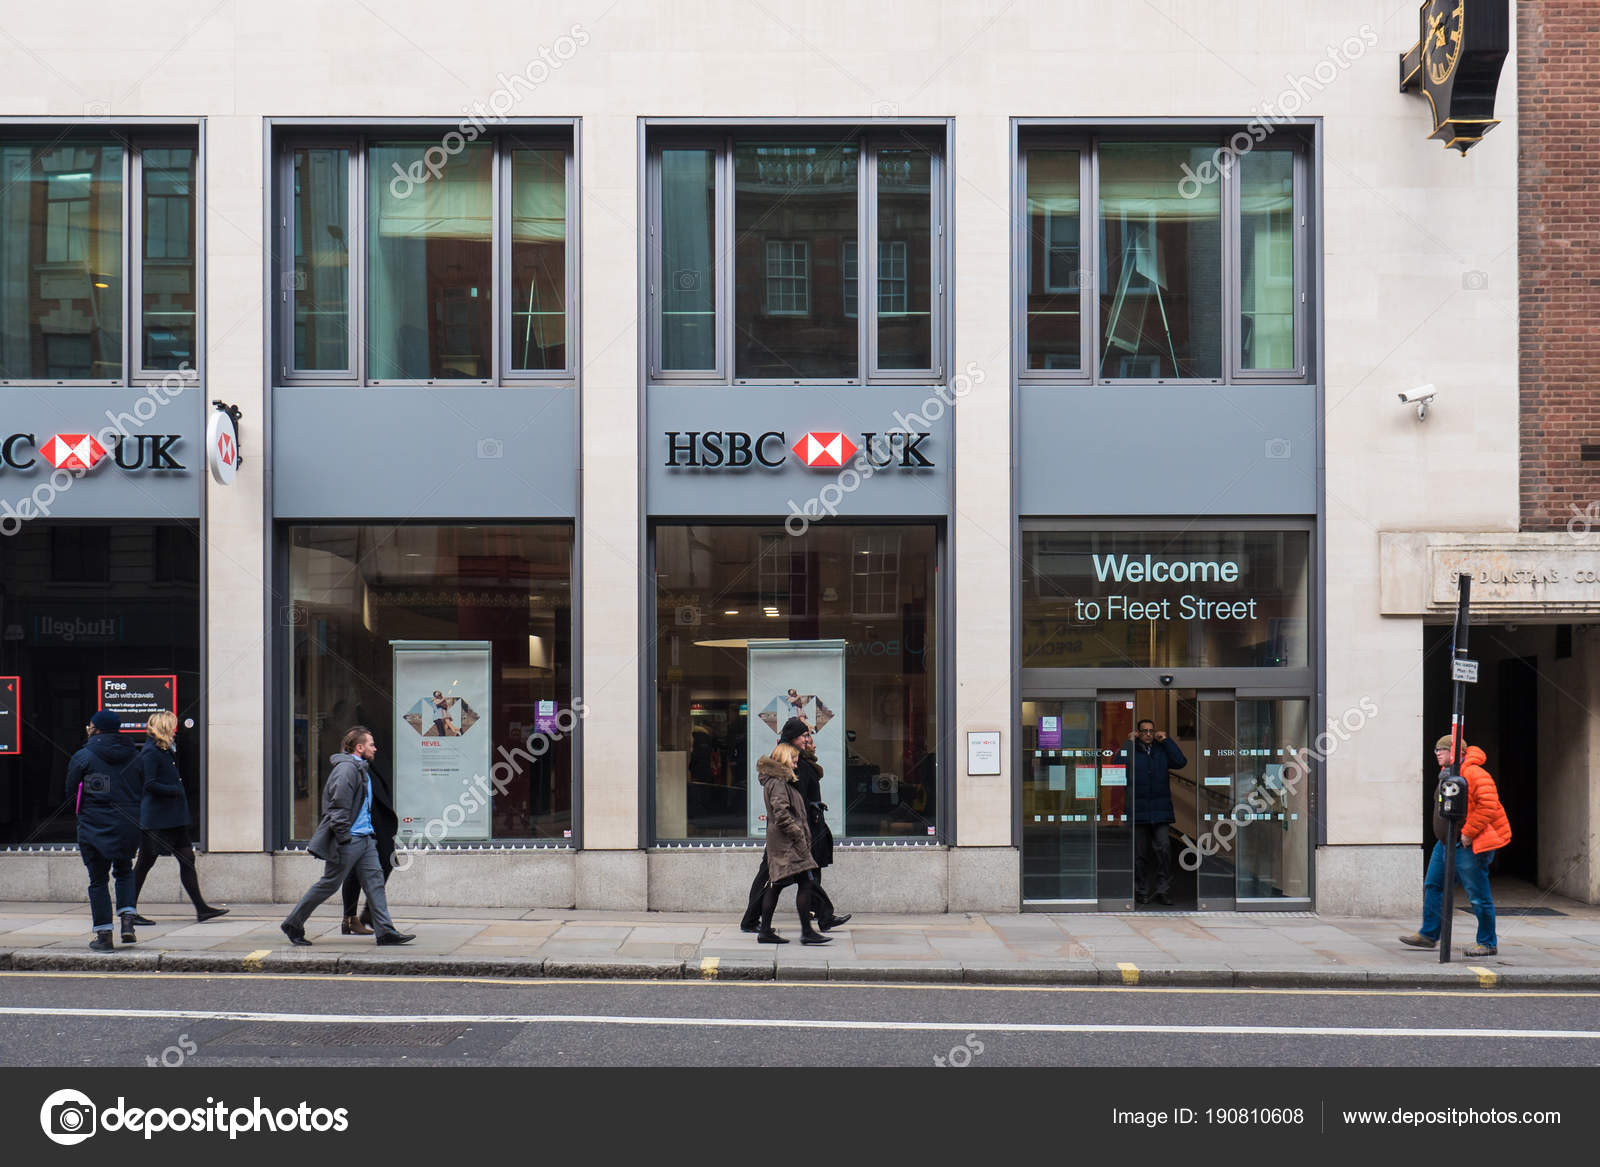 British multinational banking and financial services company